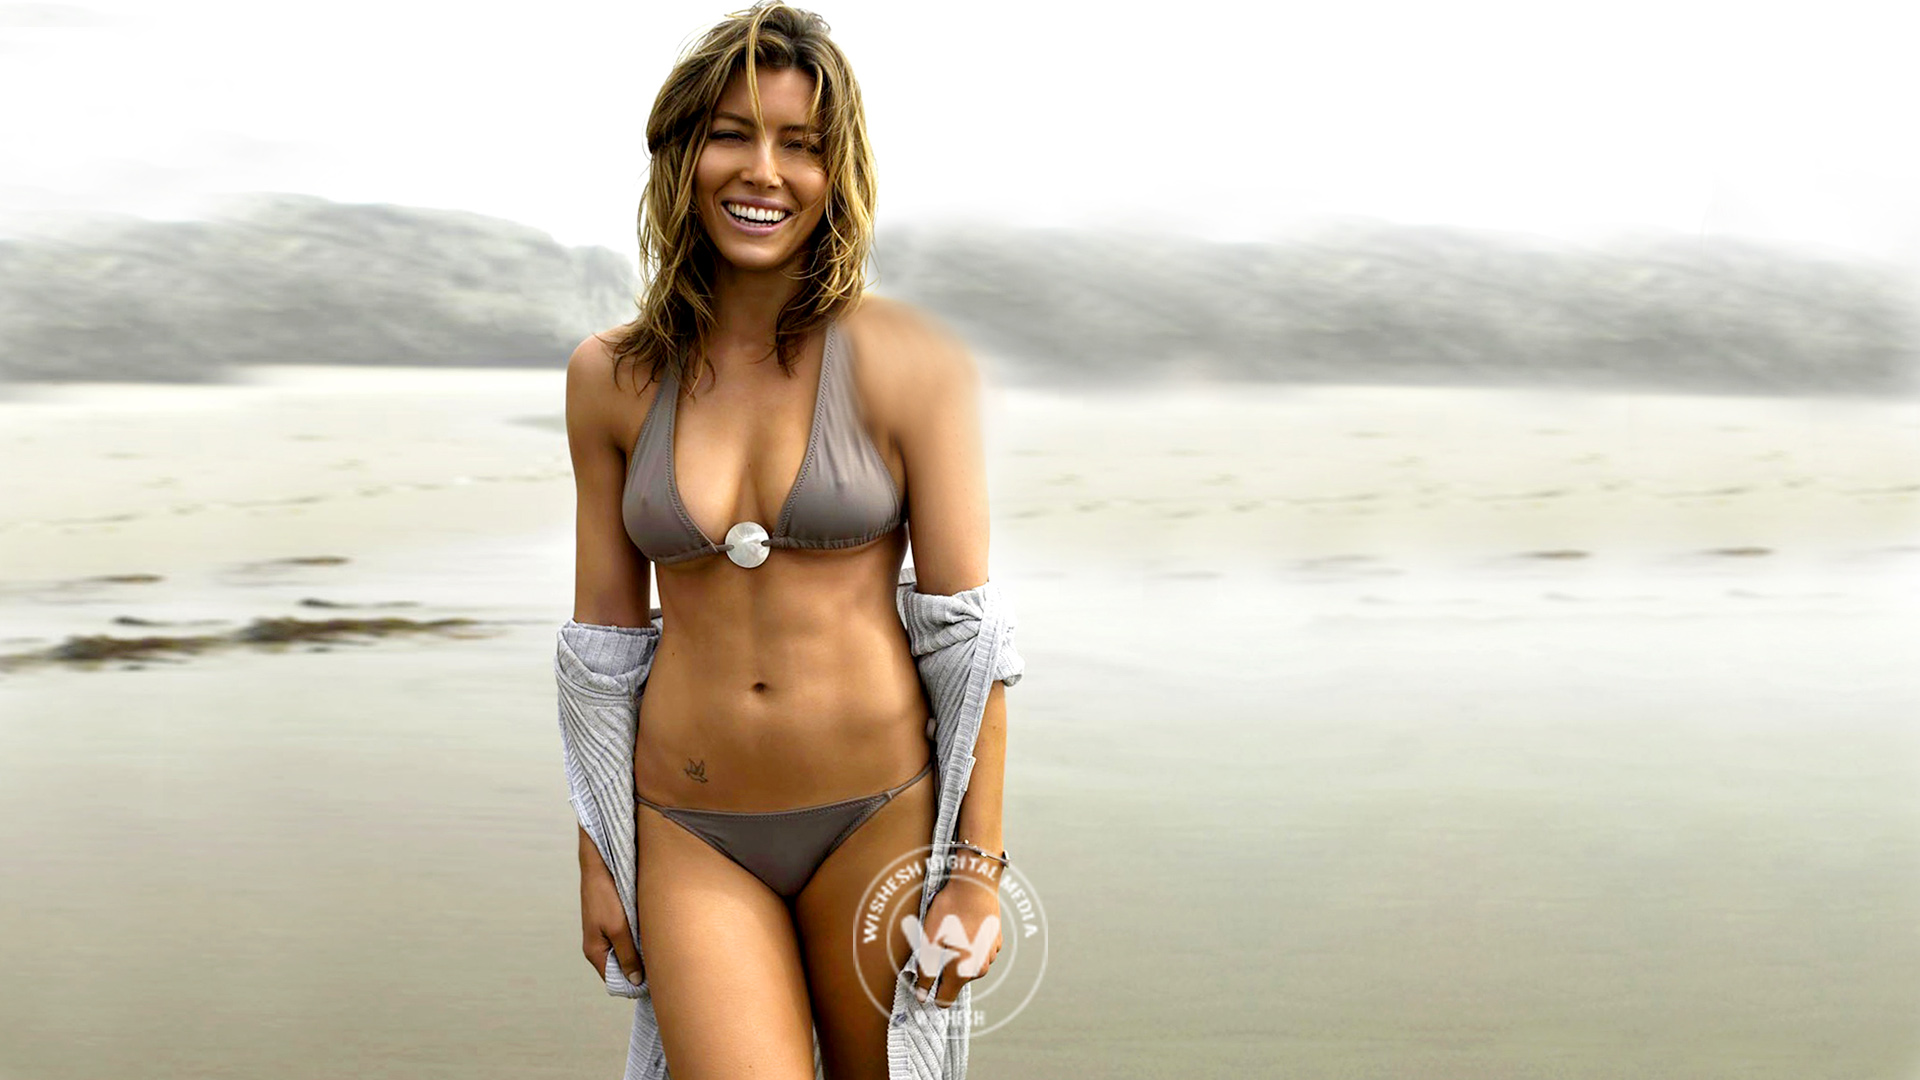 Jessica Biel Spicy Wallpapers | Photo 4 of 12 Jessica Biel